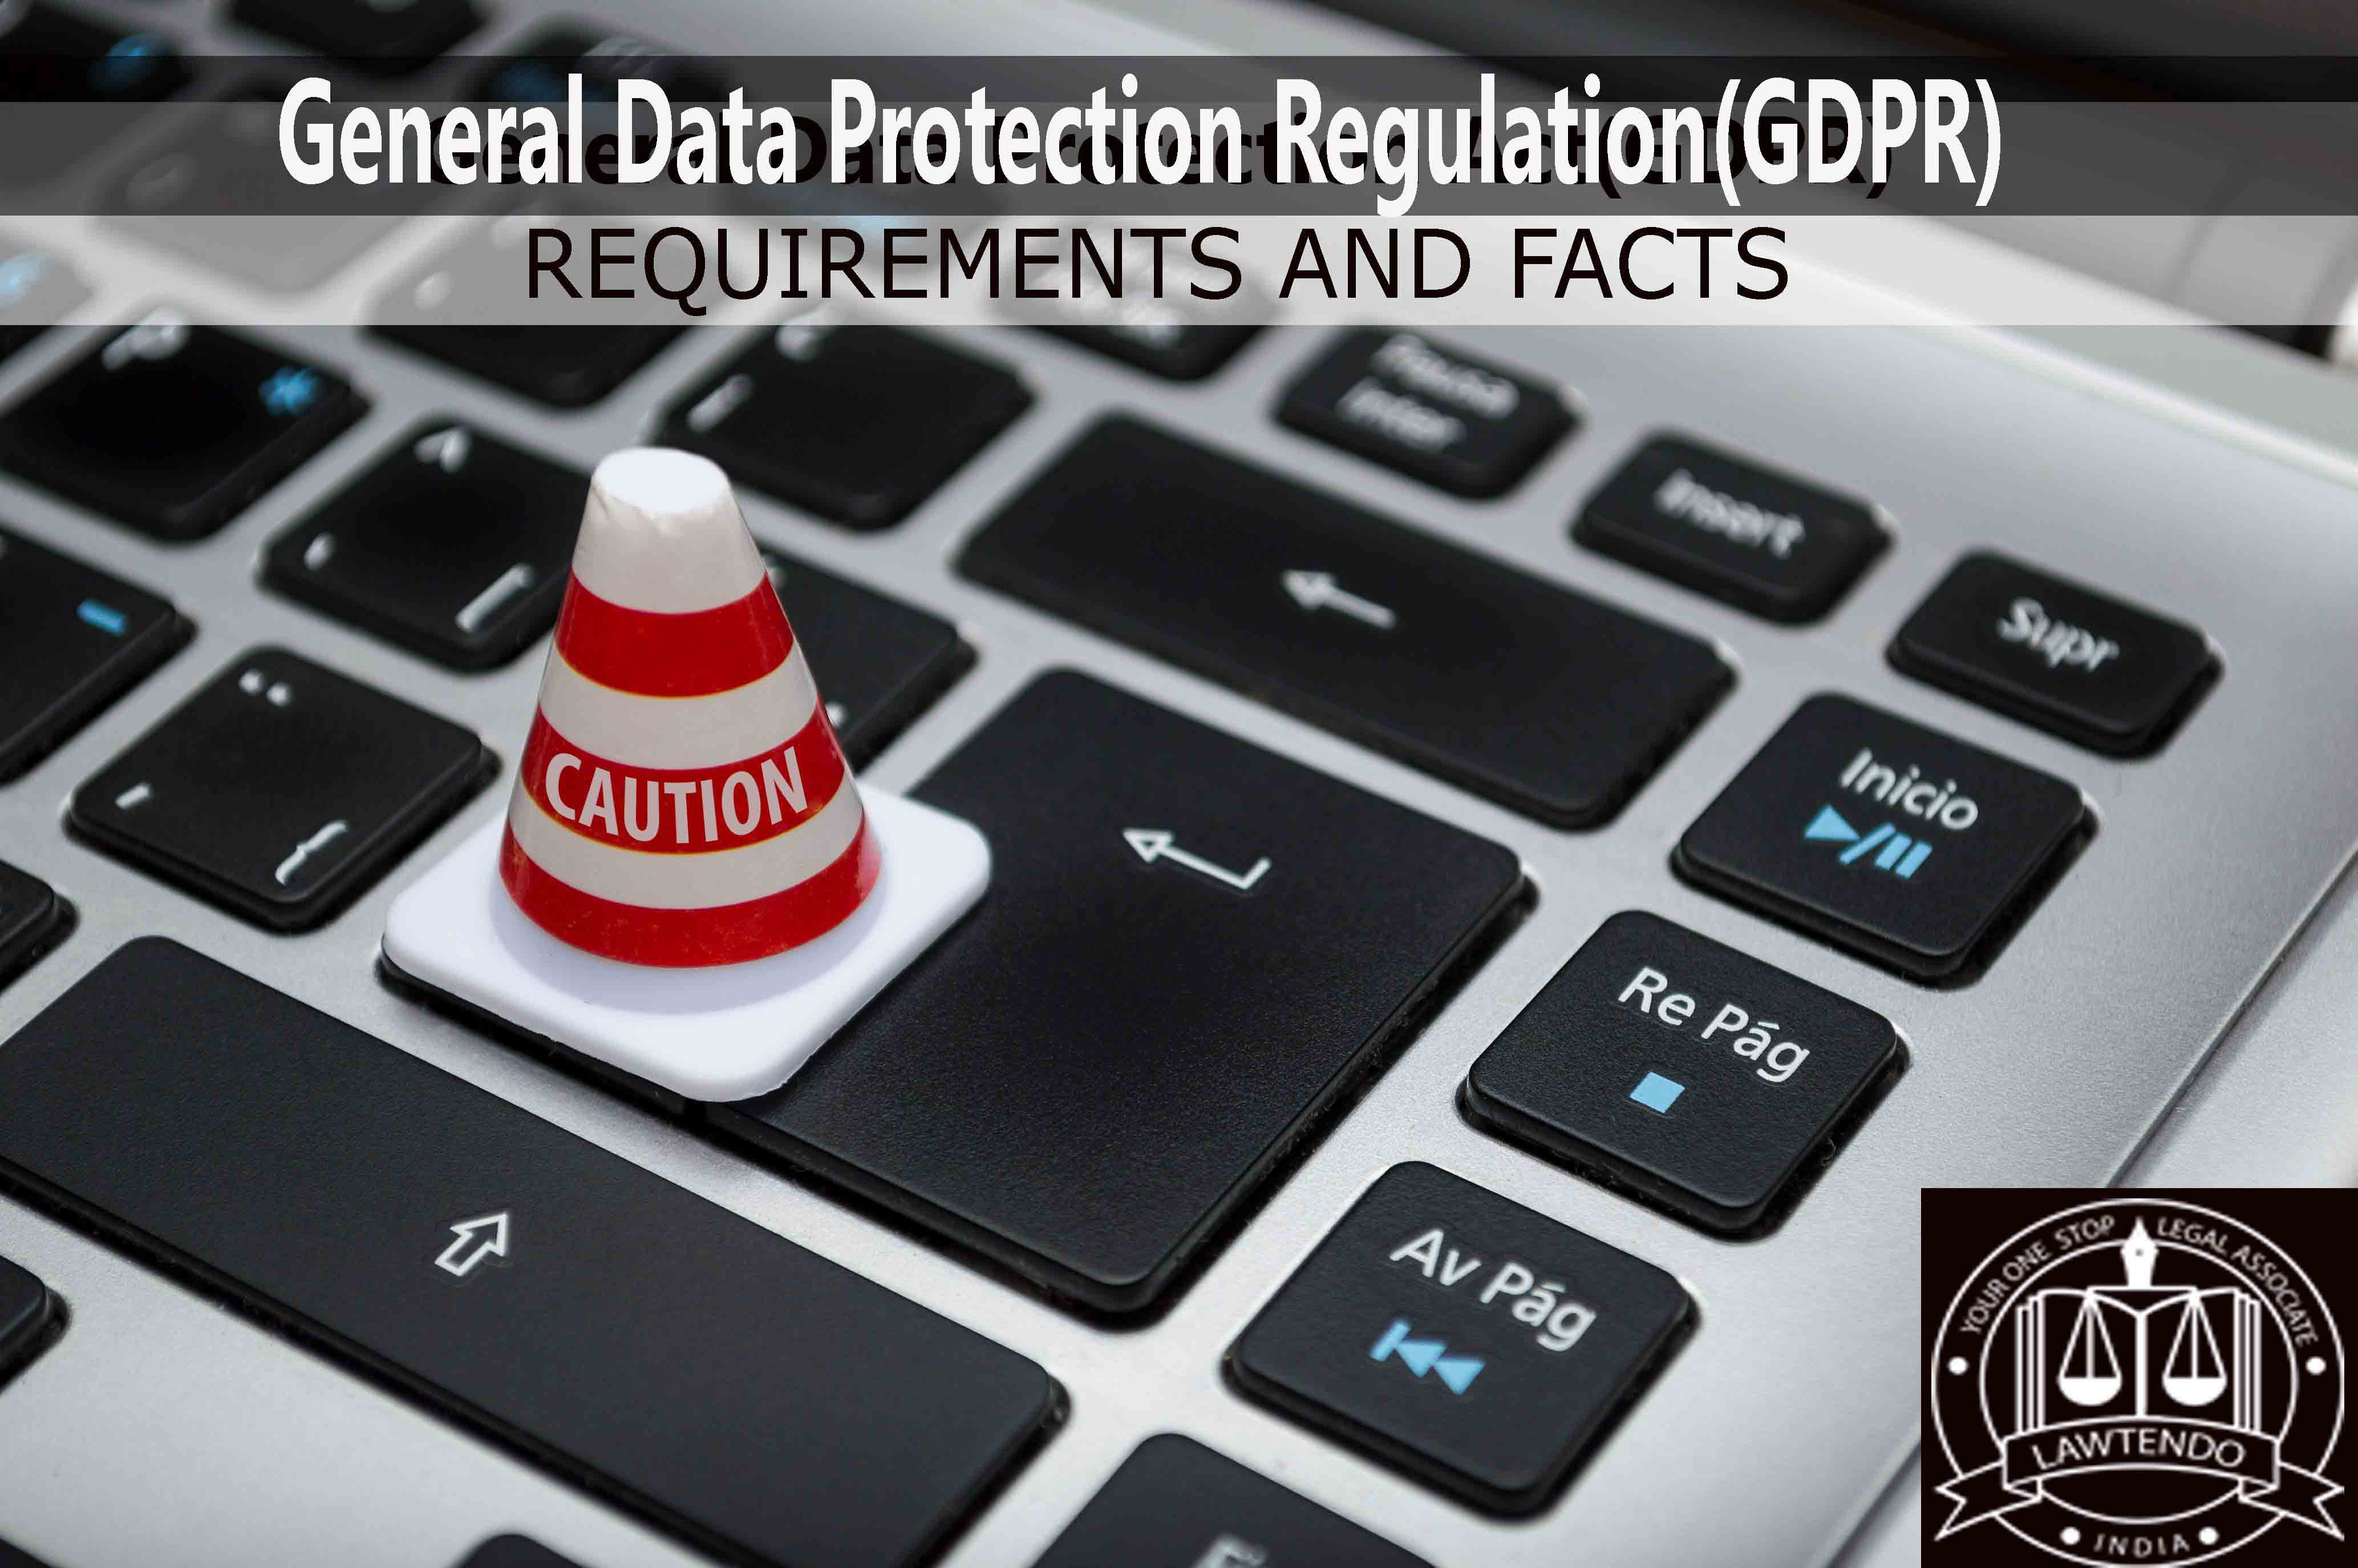 General Data Protection Regulation (GDPR) - REQUIREMENTS AND FACTS